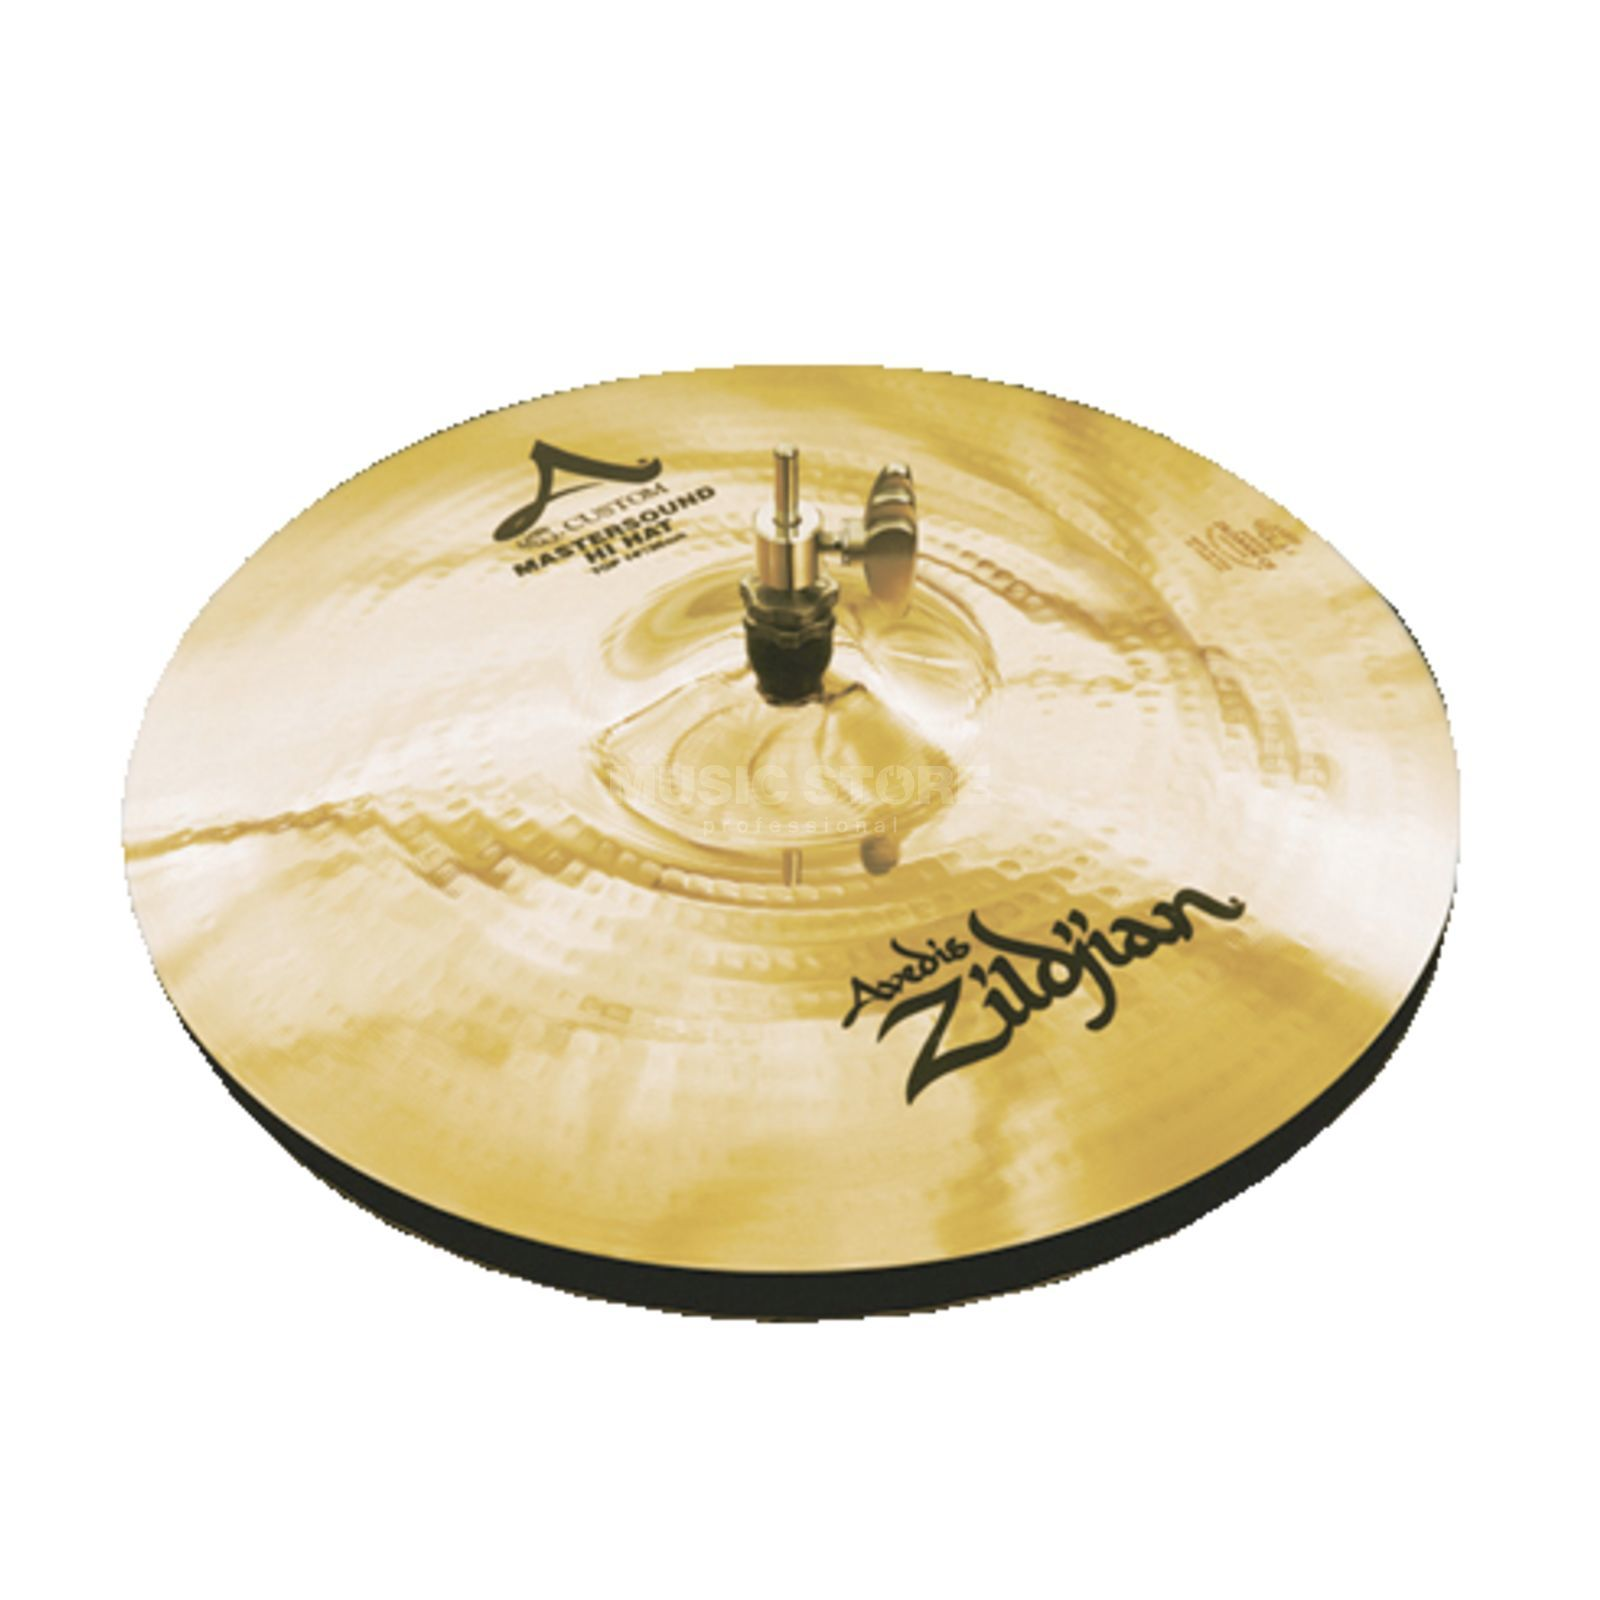 "Zildjian A-Custom Mastersound HiHat 14"" Brilliant Finish Immagine prodotto"